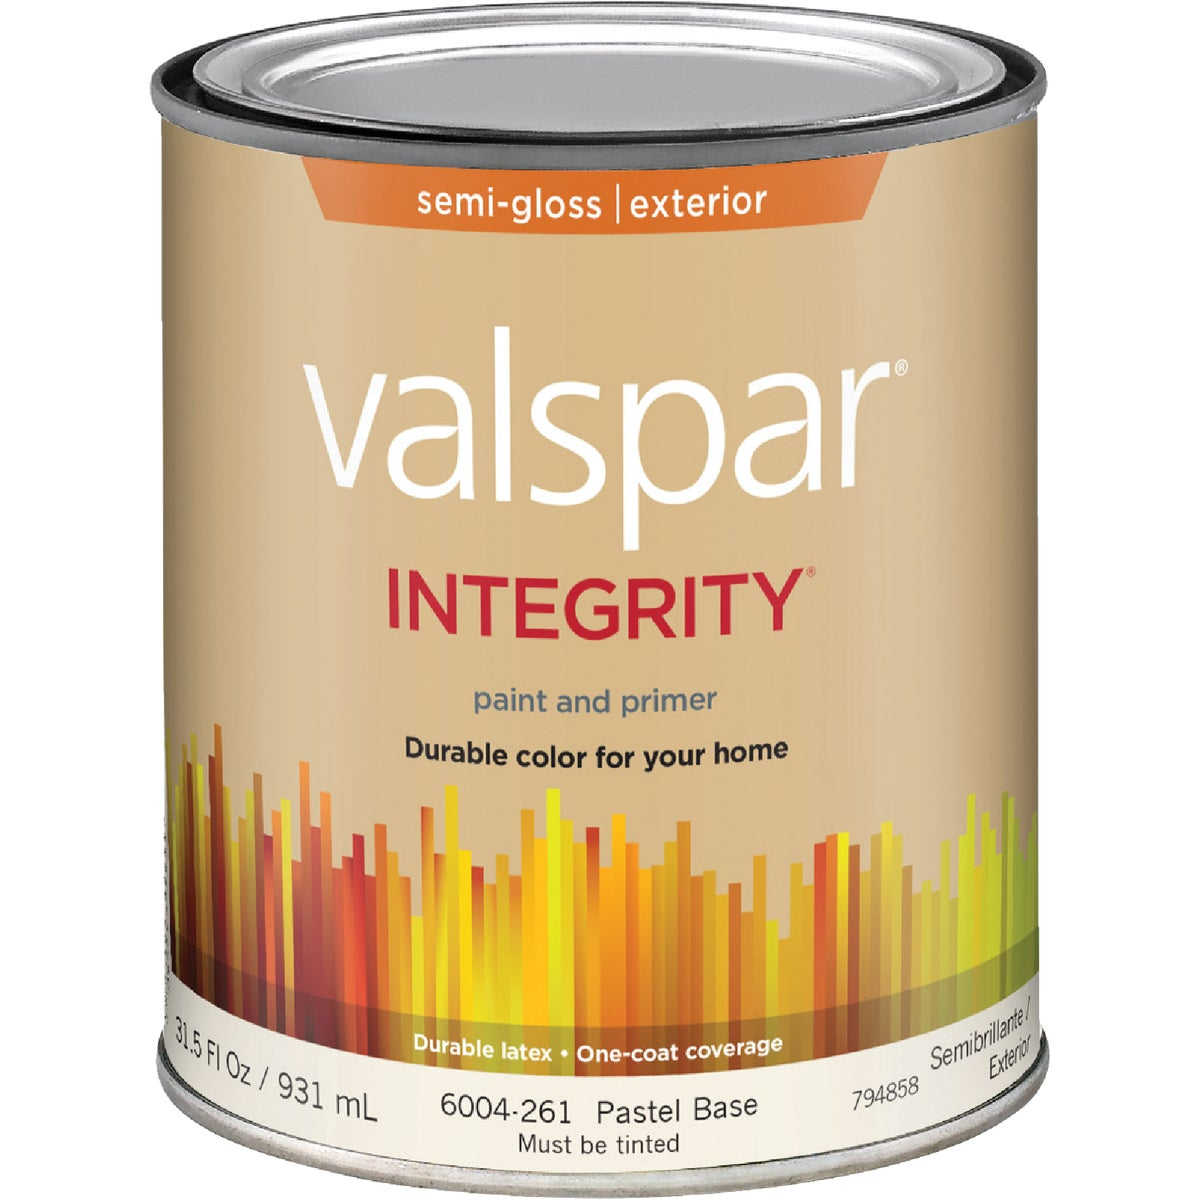 EXT S/G PASTEL BS PAINT - 004.6004261.005 by Valspar Corp